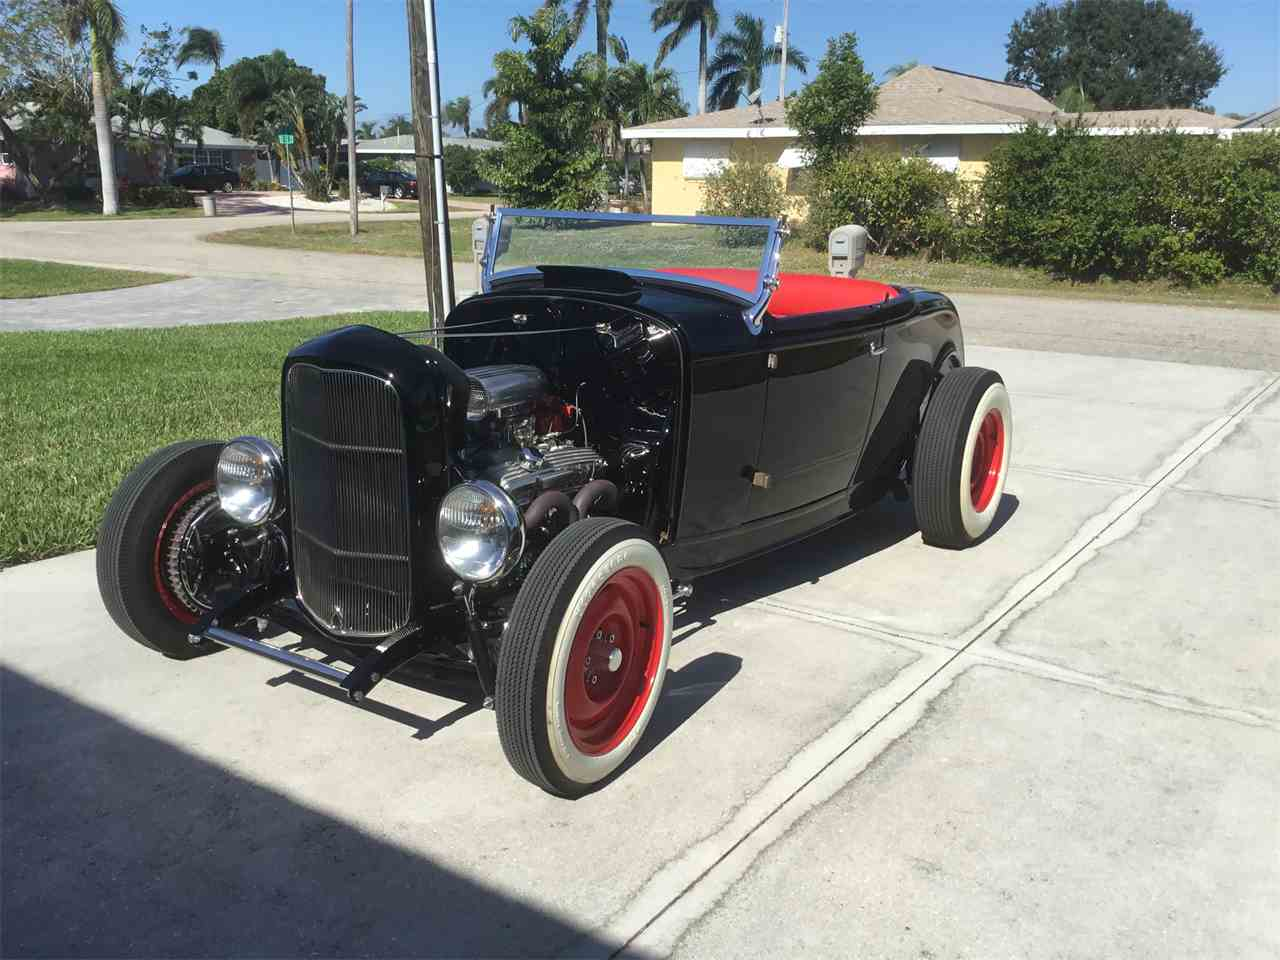 1932 Ford Roadster for Sale on ClassicCars.com